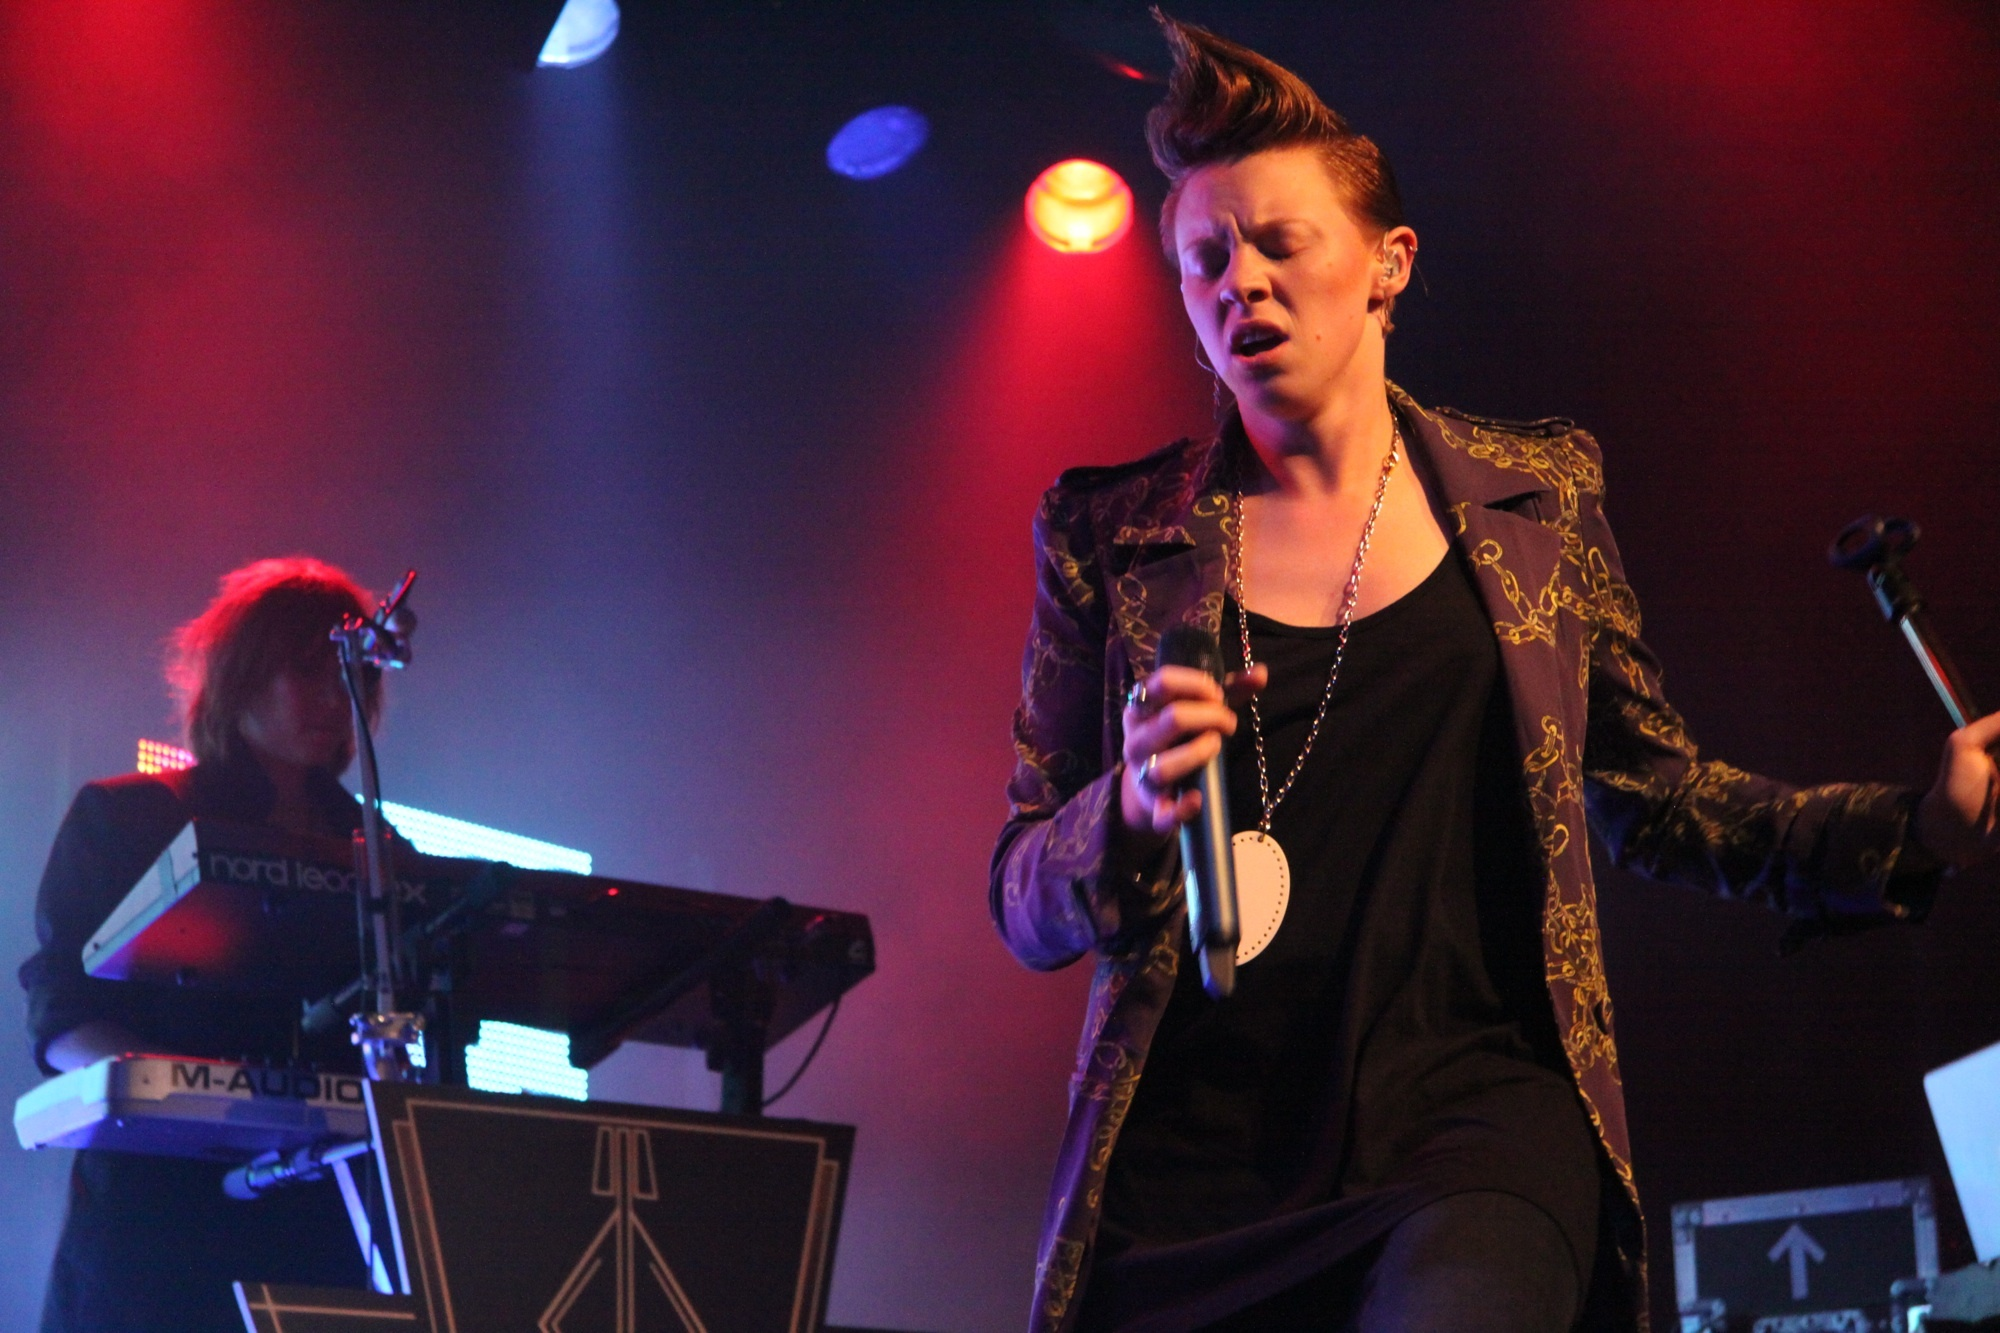 la roux concert photo HD Wallpaper